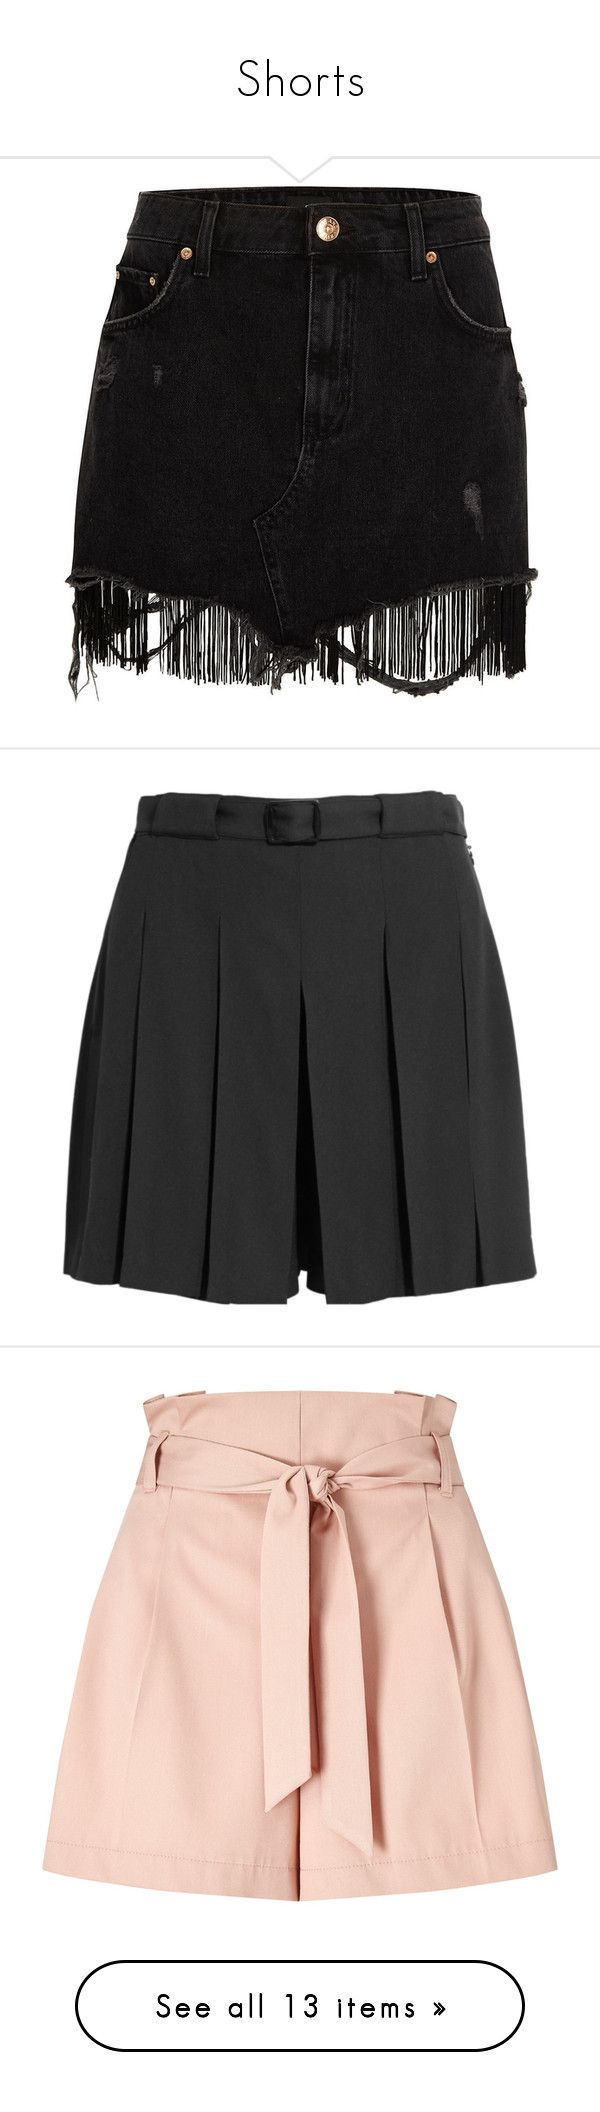 """""""Shorts"""" by jordan-mobley ❤ liked on Polyvore featuring skirts, mini skirts, shorts, black, women, zipper mini skirt, tall skirts, short skirts, distressed skirt and distressed denim skirt"""